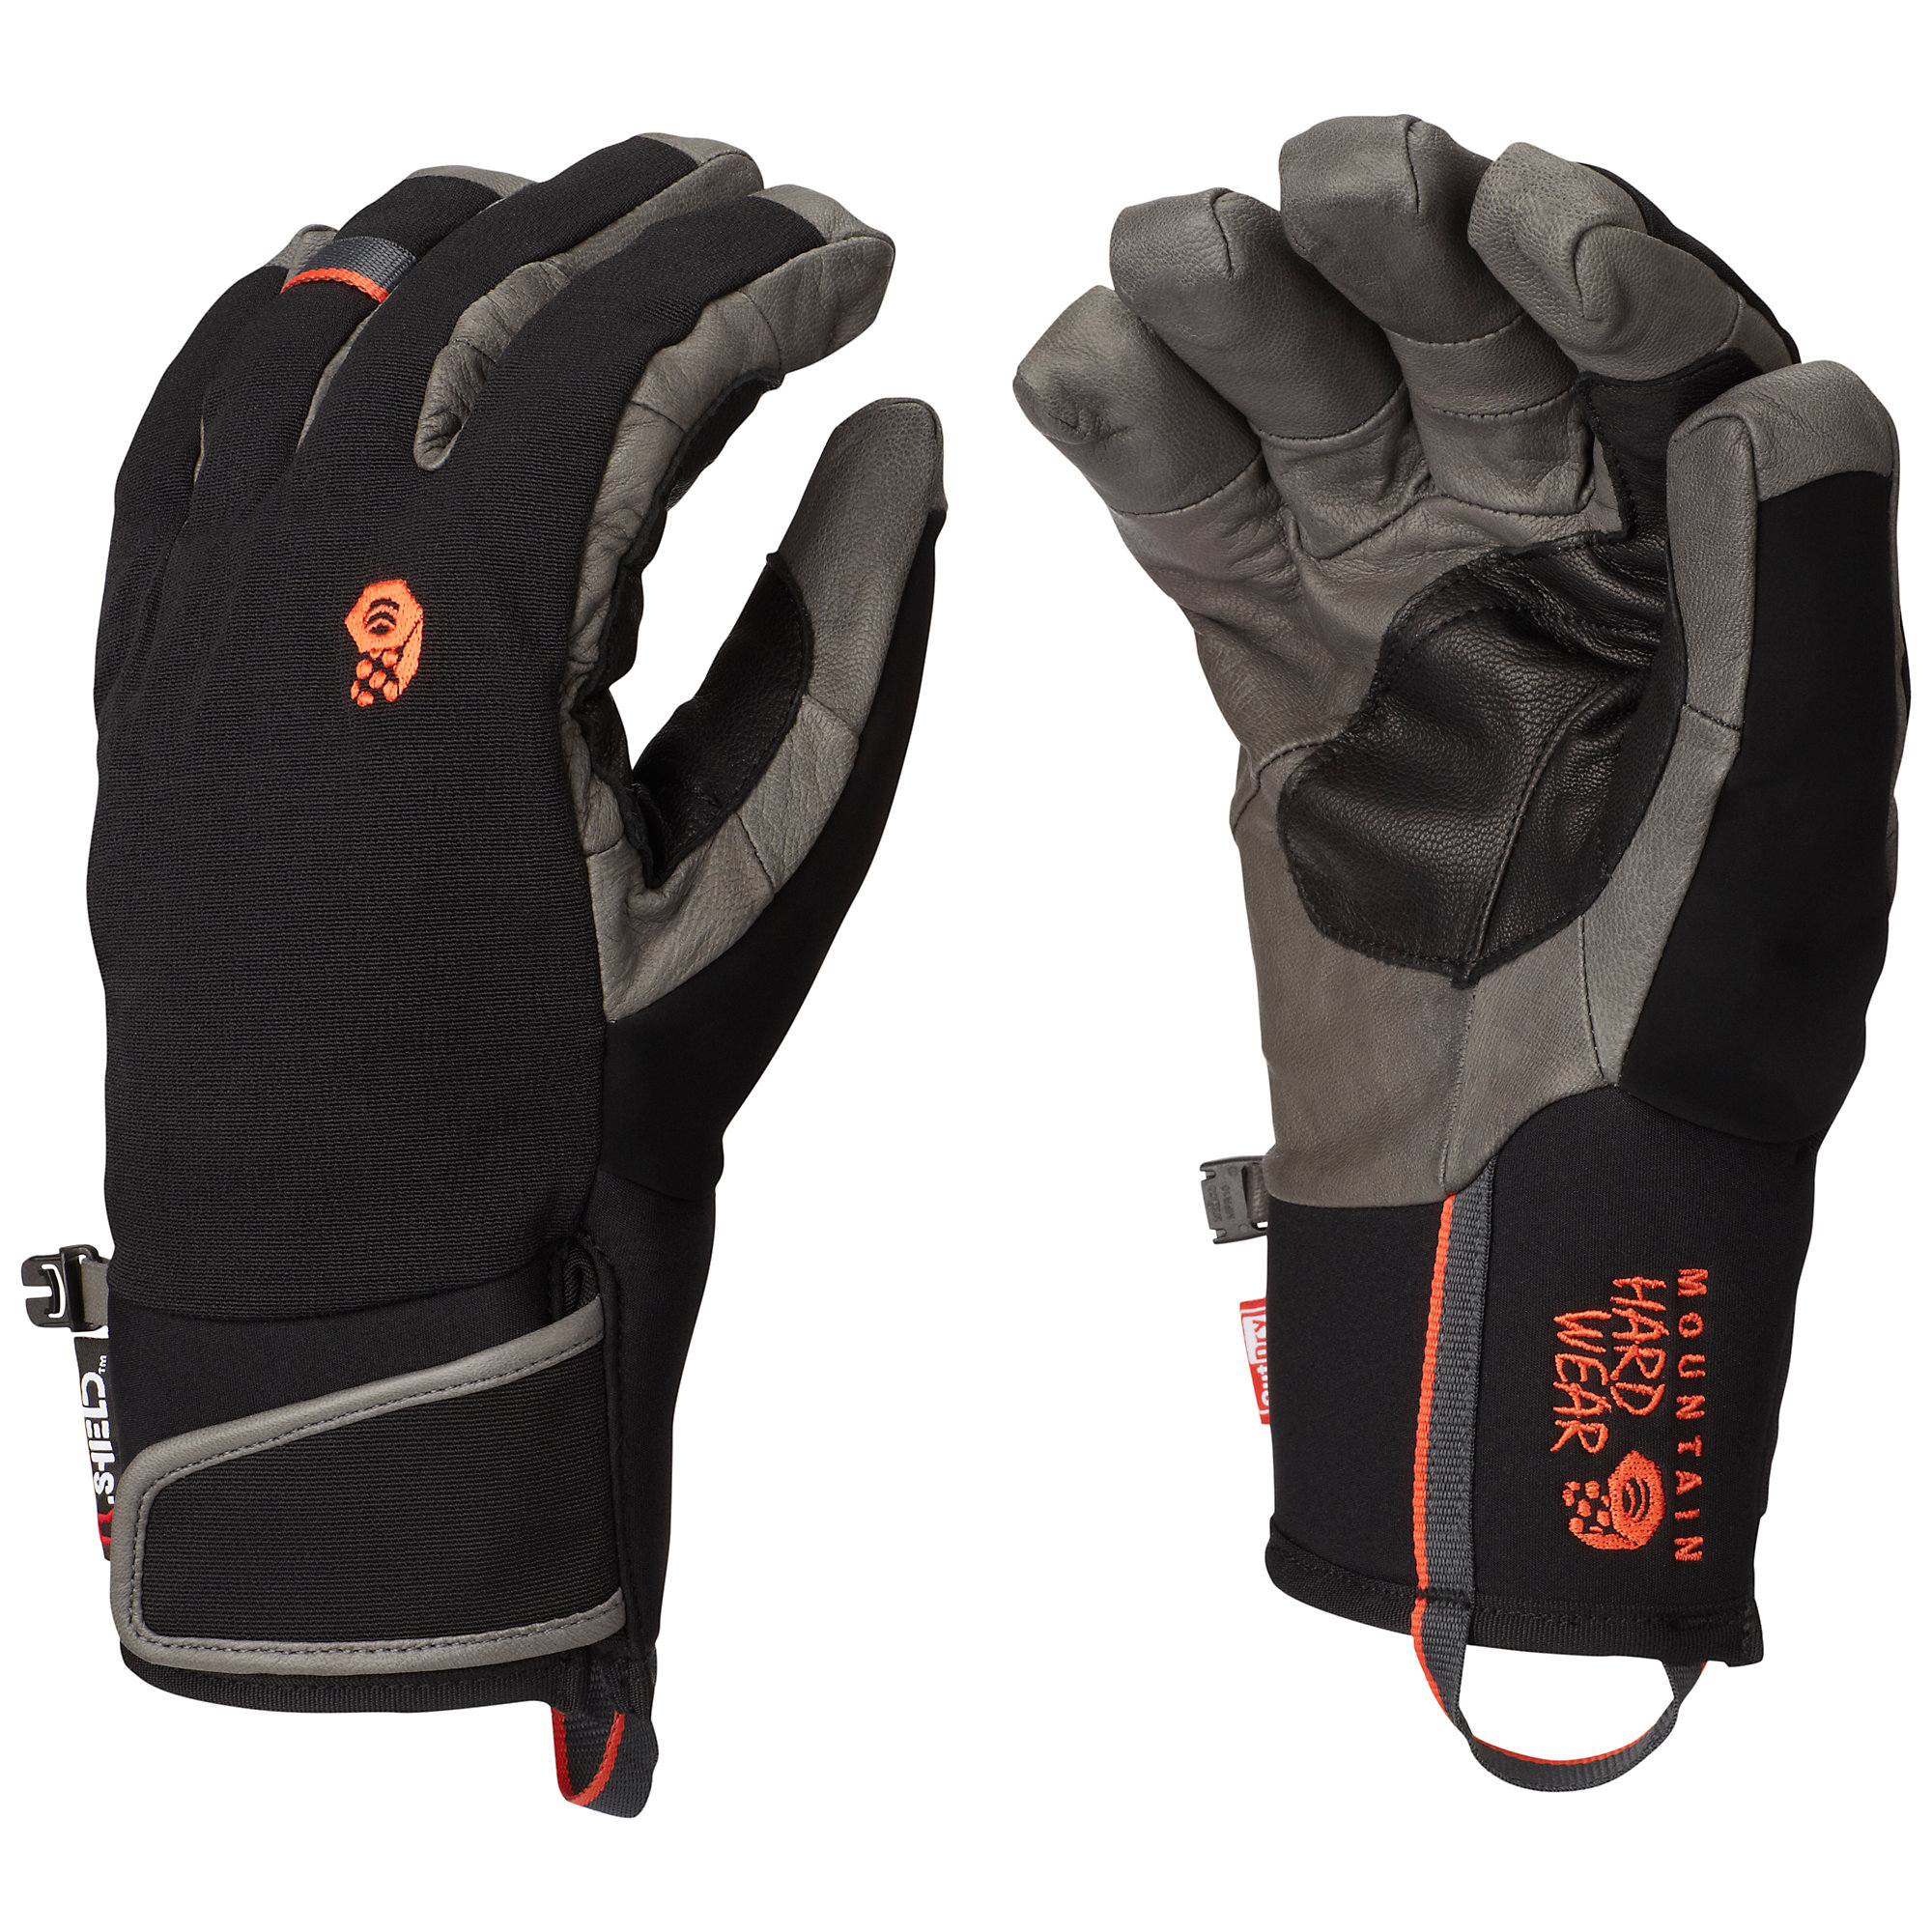 Mountain Hardwear Hydra Pro OutDry Glove